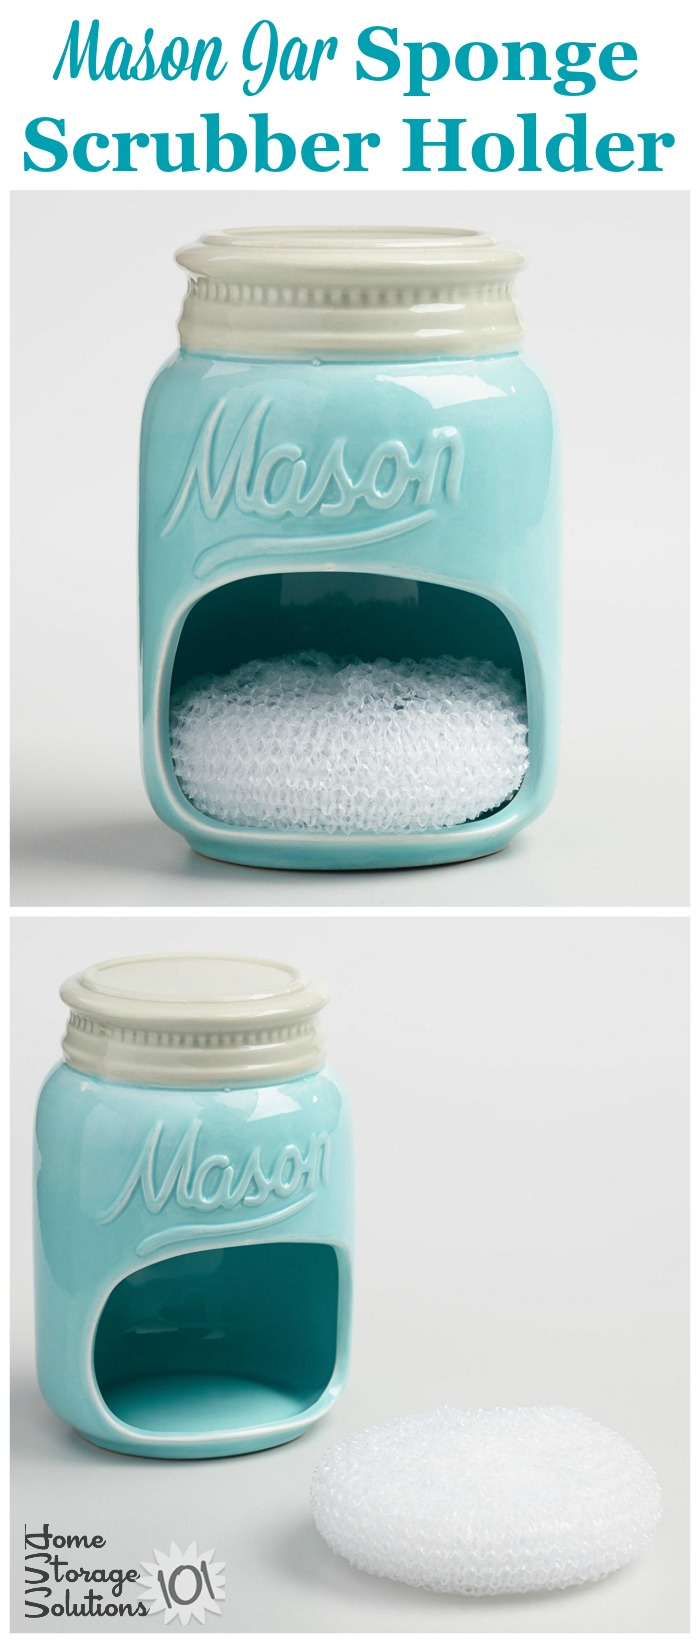 Mason Jar gift ideas: This Mason Jar sponge scrubber holder is both useful and beautiful in your kitchen, to help organize and beautify your sink {featured on Home Storage Solutions 101}